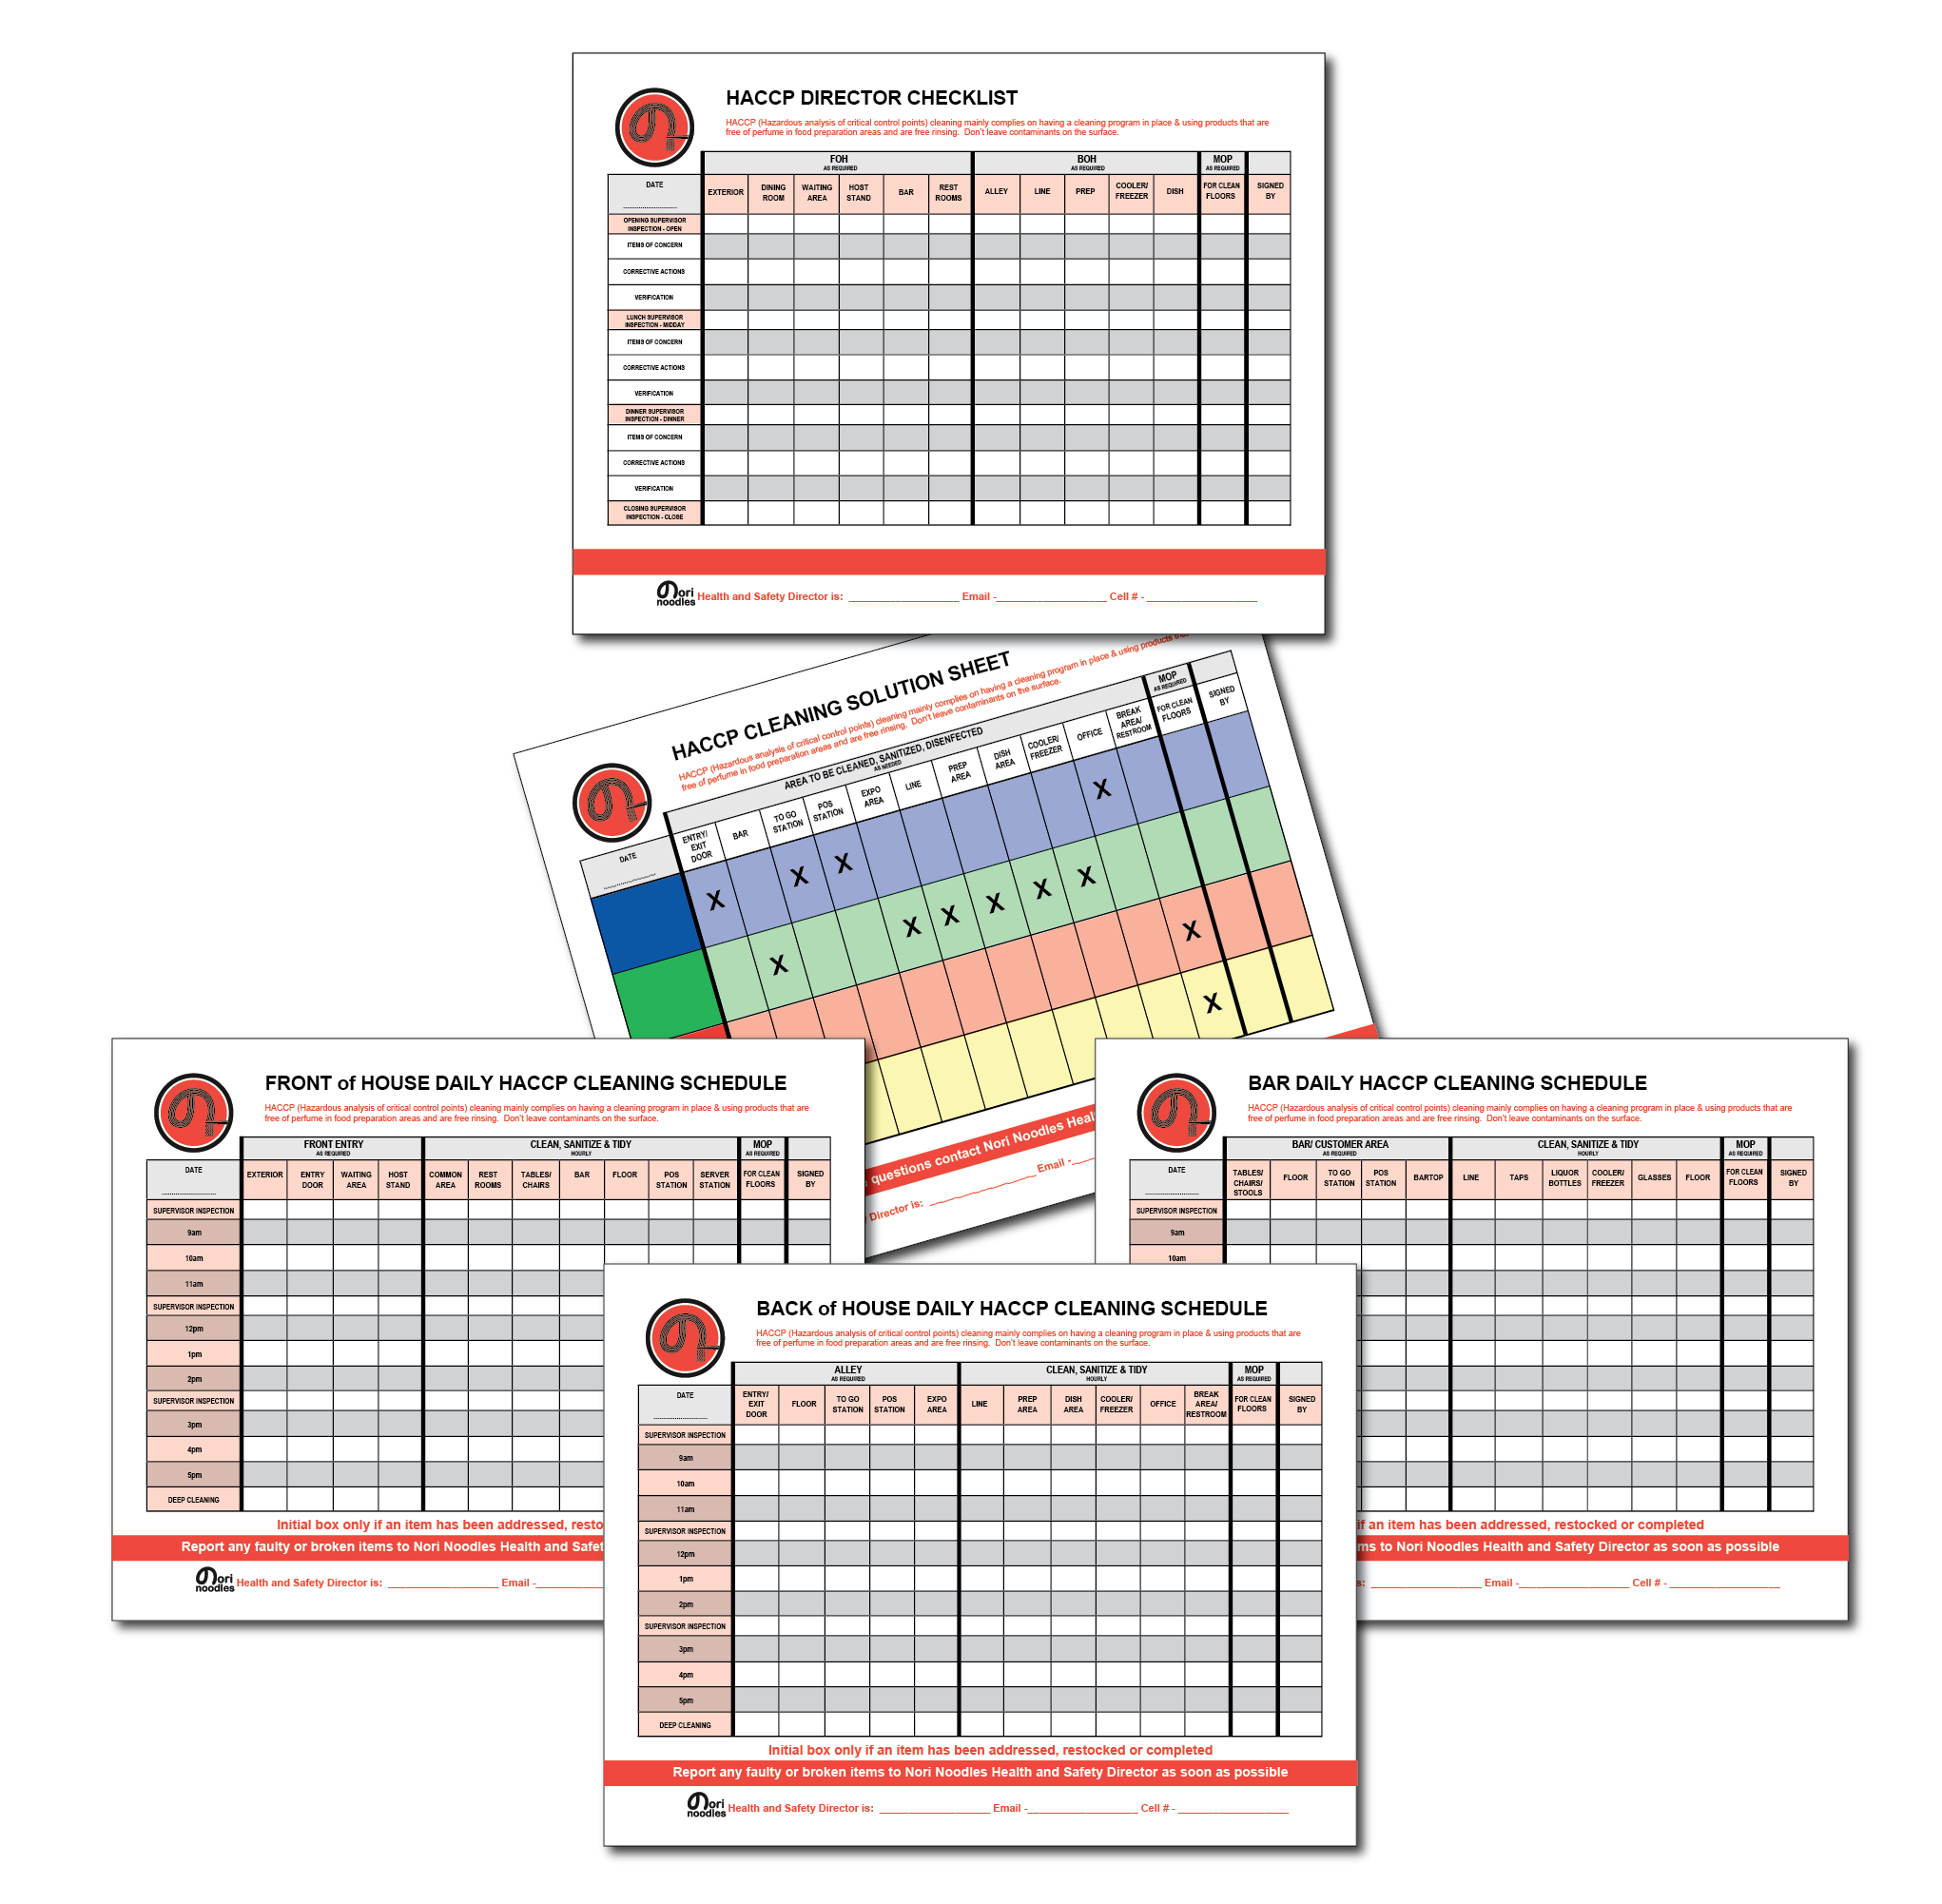 Front of House HACCP Checklist example